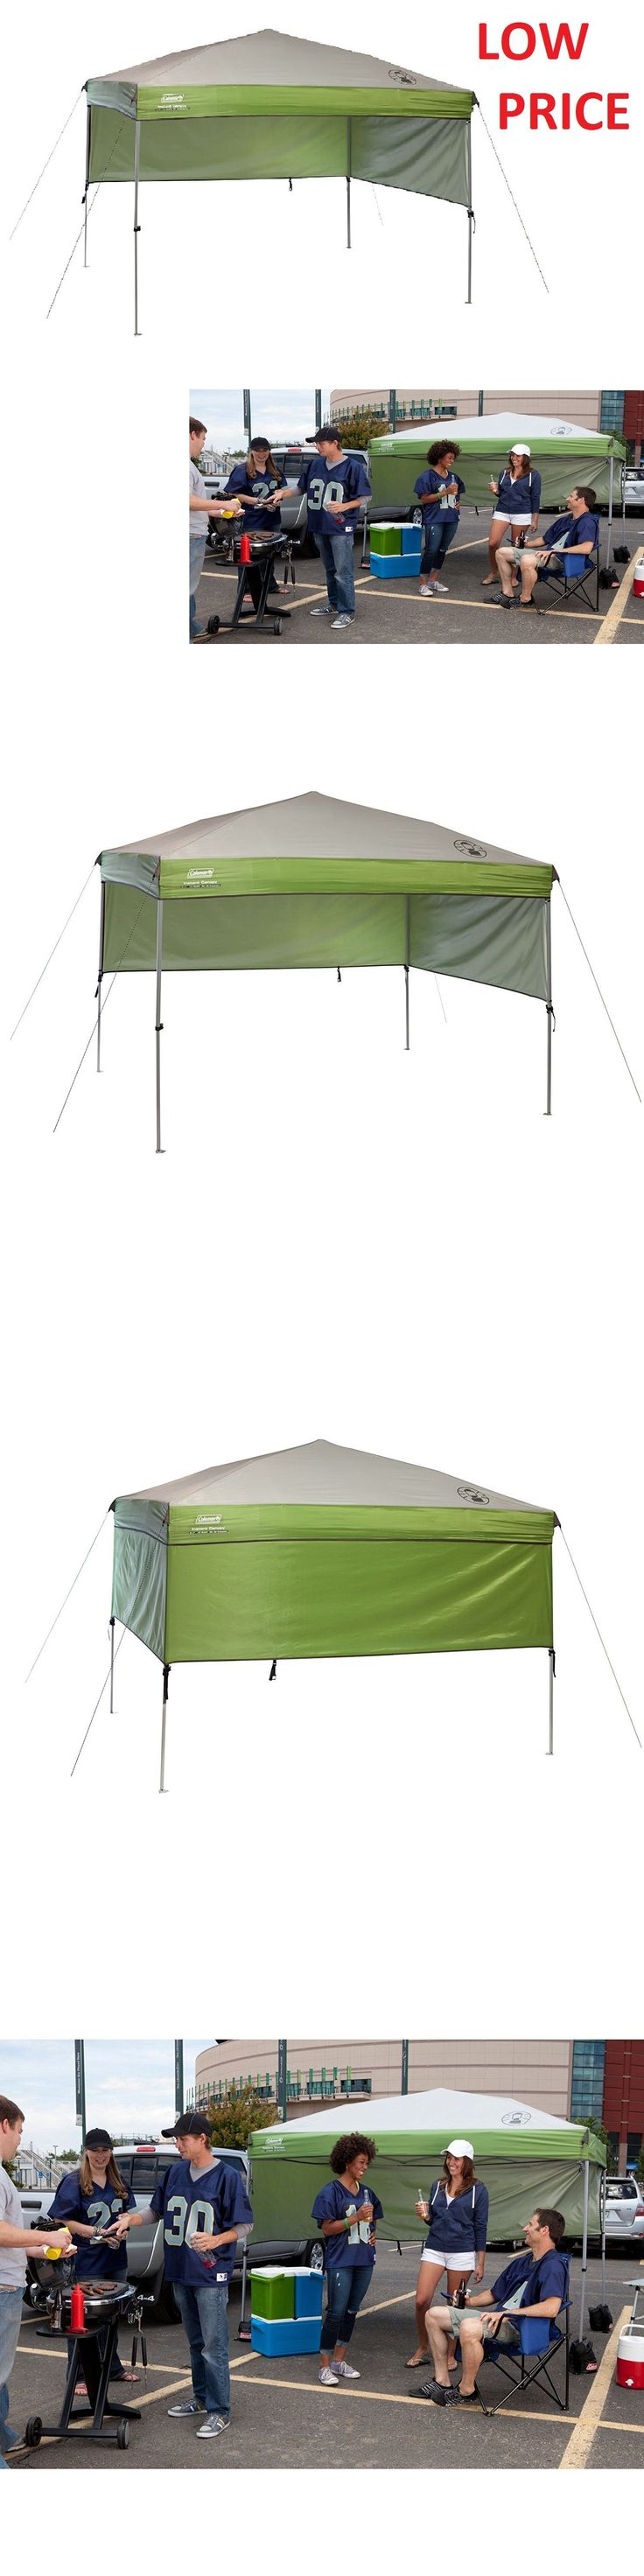 Canopies and Shelters 179011: Outdoor Gazebo Canopy Camping Hiking Sunwall Accessory Uv Protection Sun Shelter -> BUY IT NOW ONLY: $43.45 on eBay!